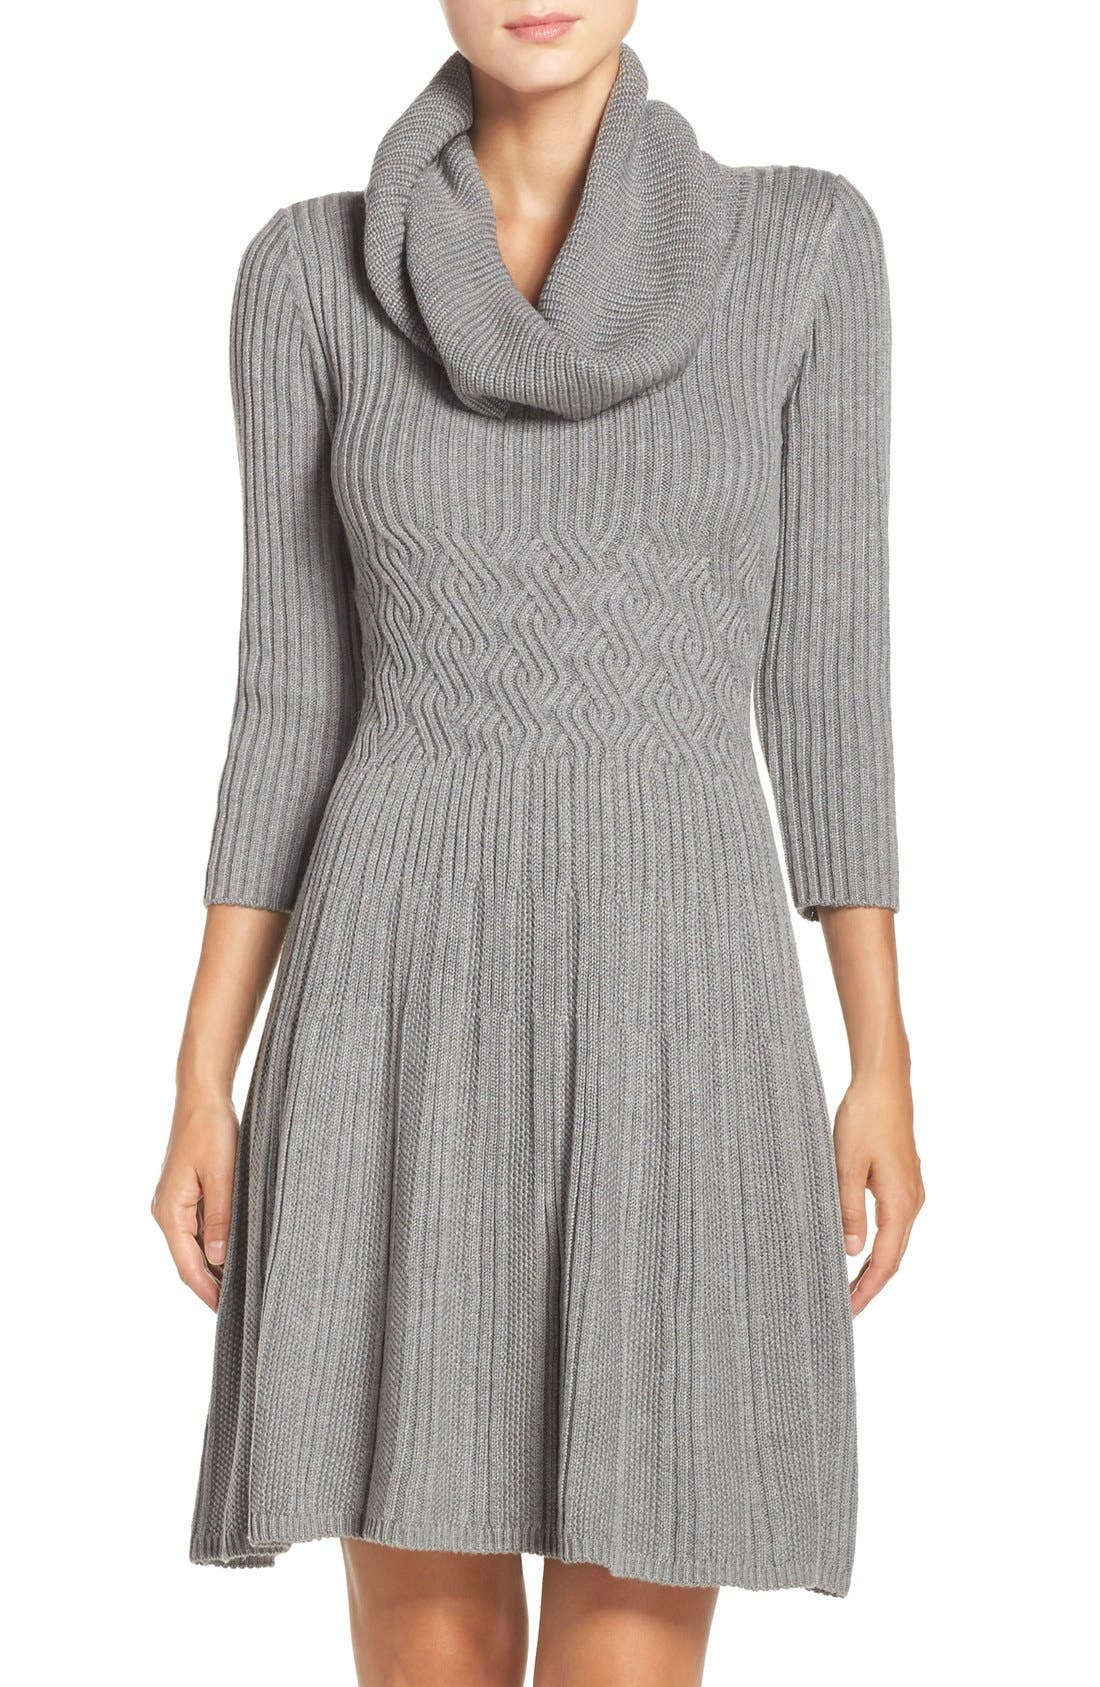 Main Image - Eliza J Fit & Flare Sweater Dress (Regular & Petite)